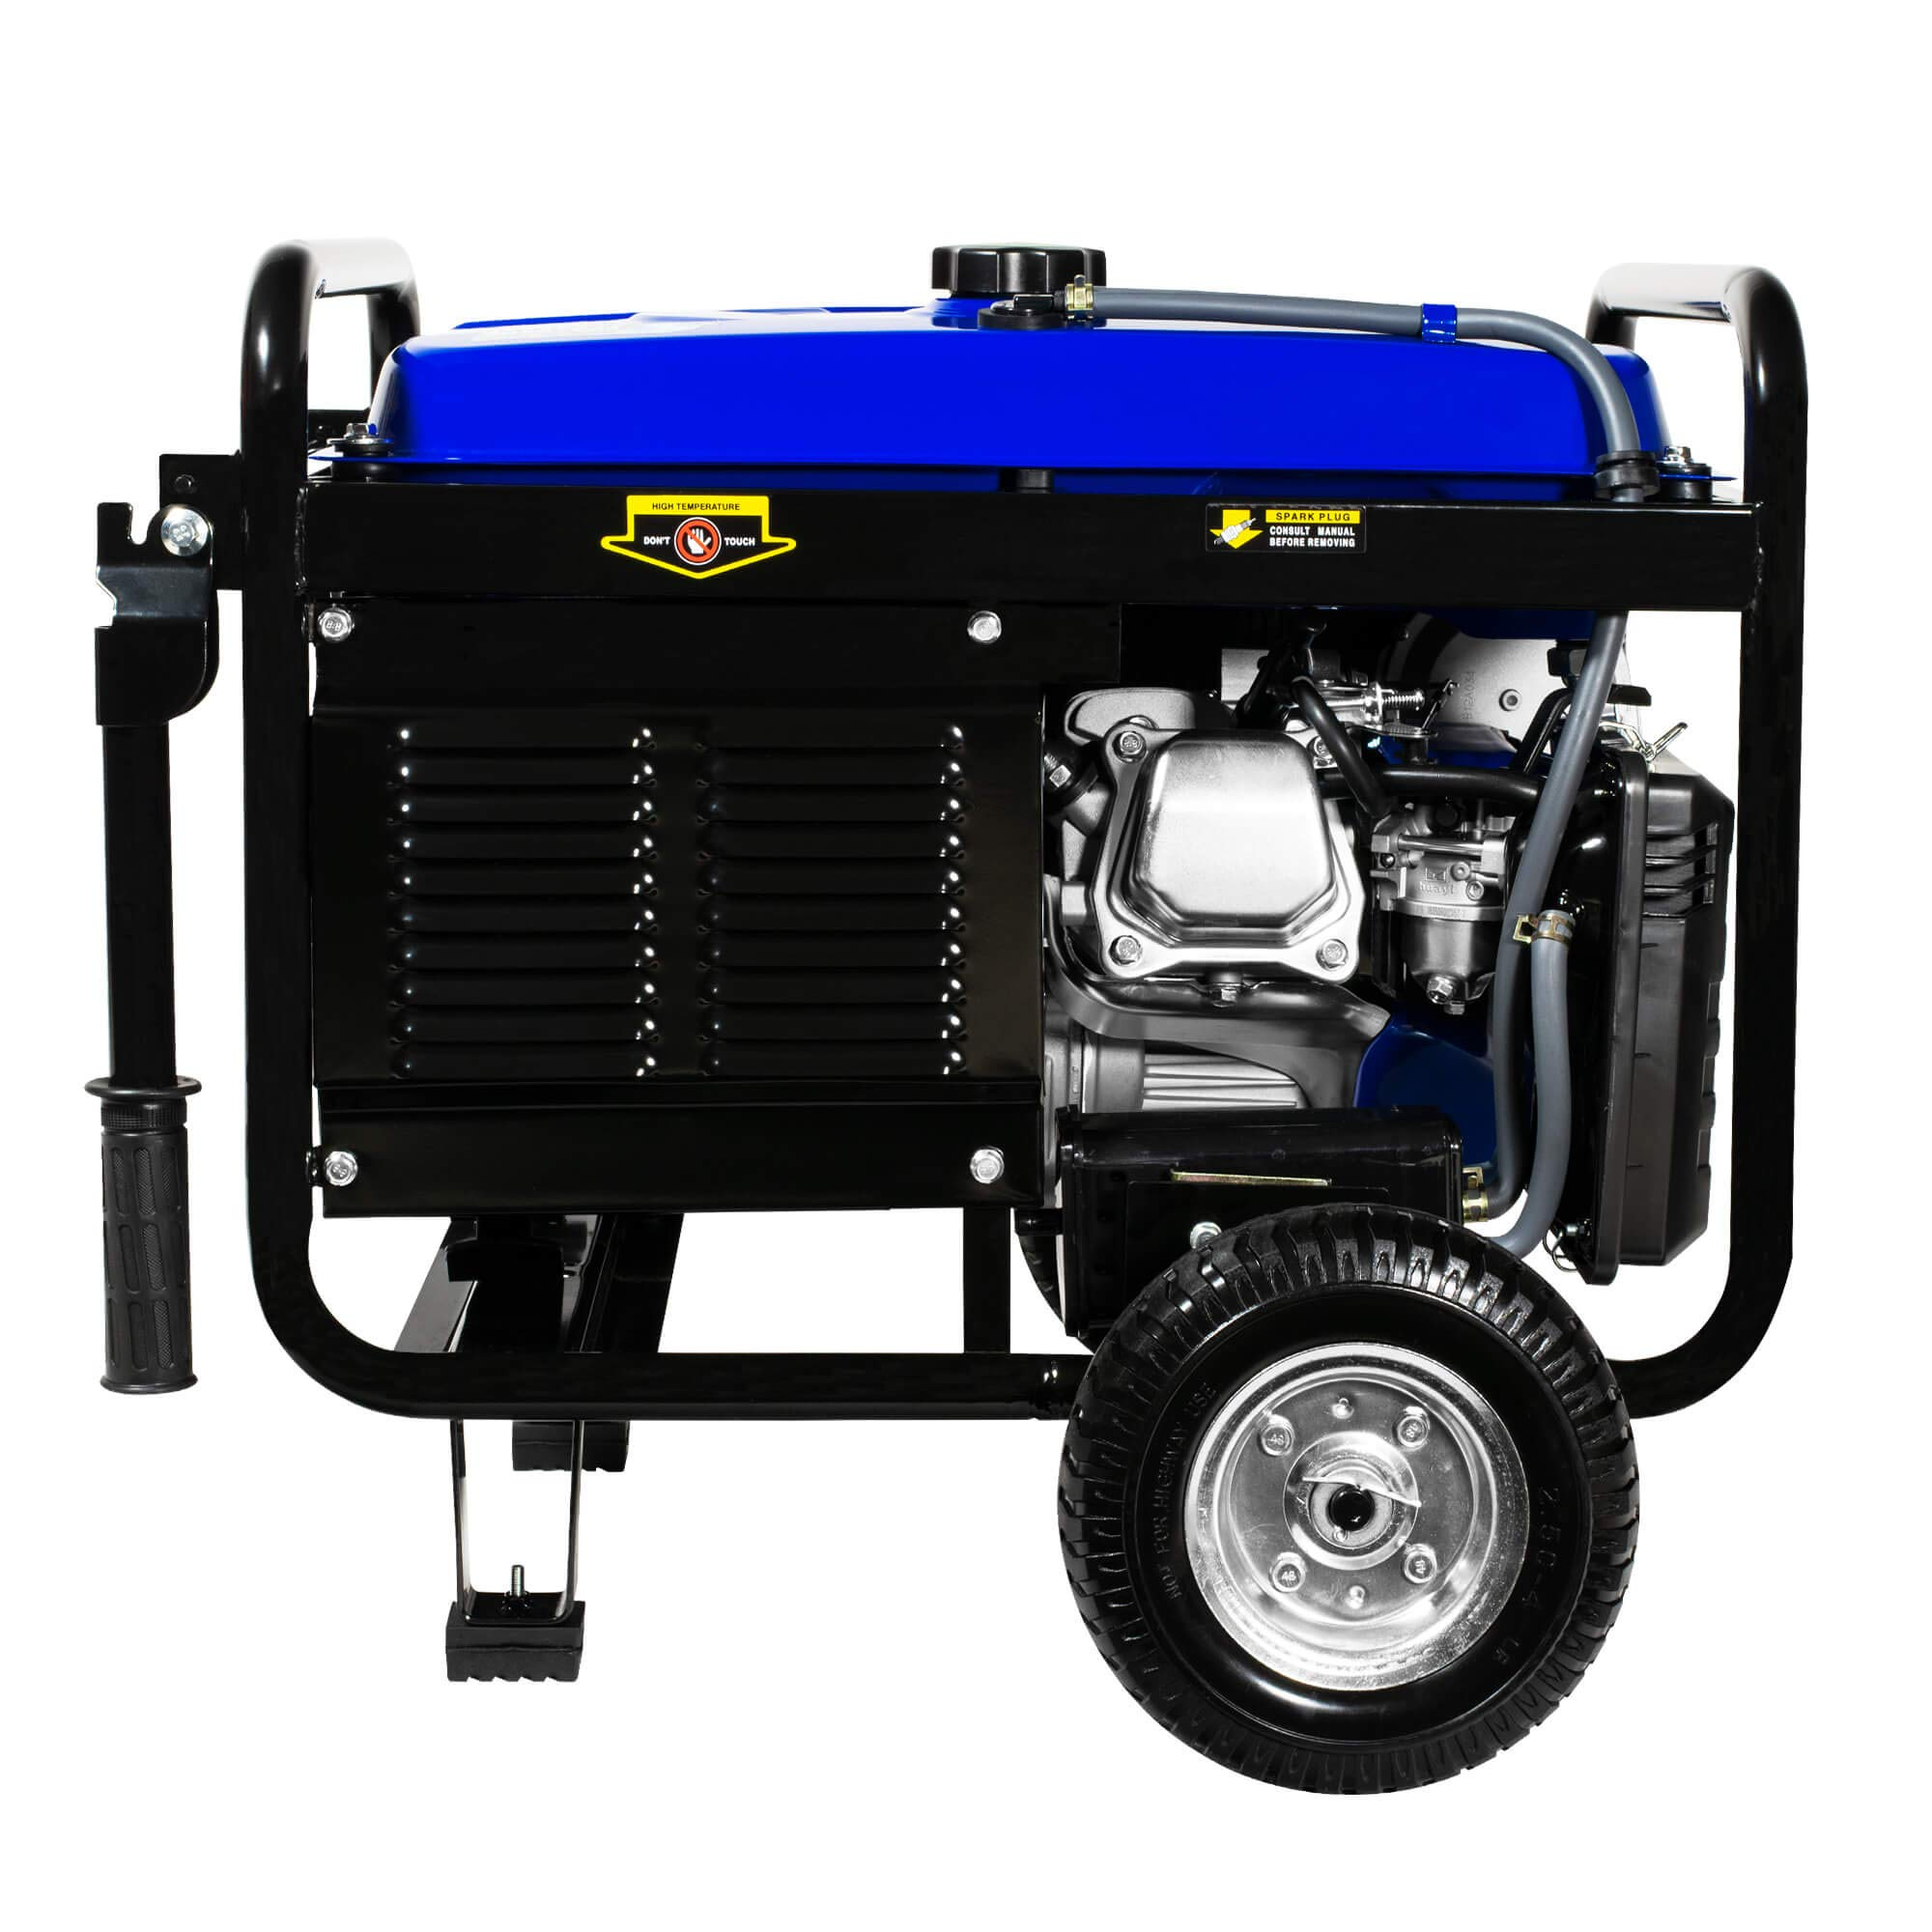 DuroMax XP5500EH 5,500 Watt 7.5 HP Portable Electric Start Dual Fuel Gas/Propane Generator by DuroMax (Image #7)